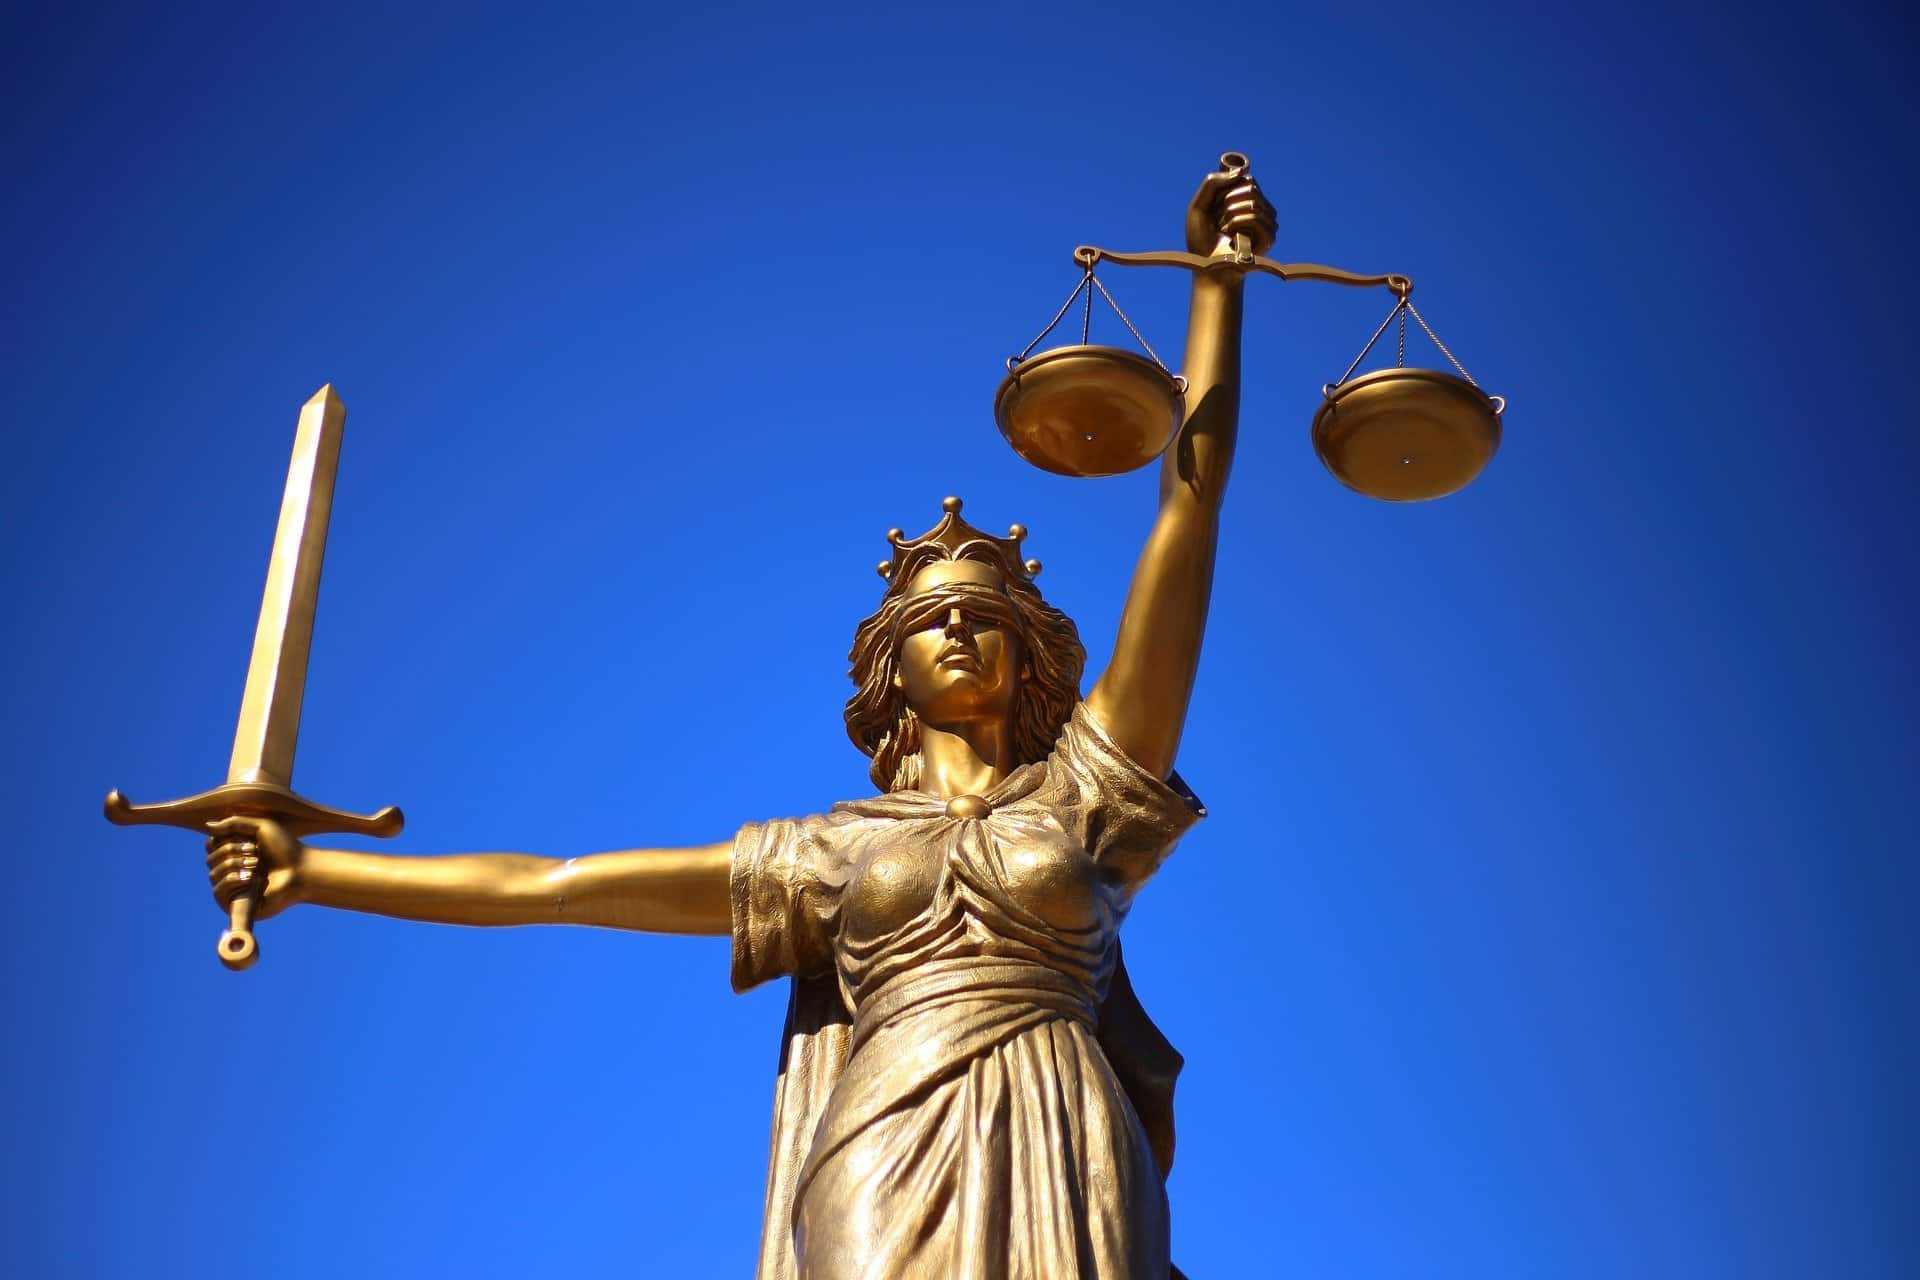 the lady of justice holding sword and scales against a blue sky